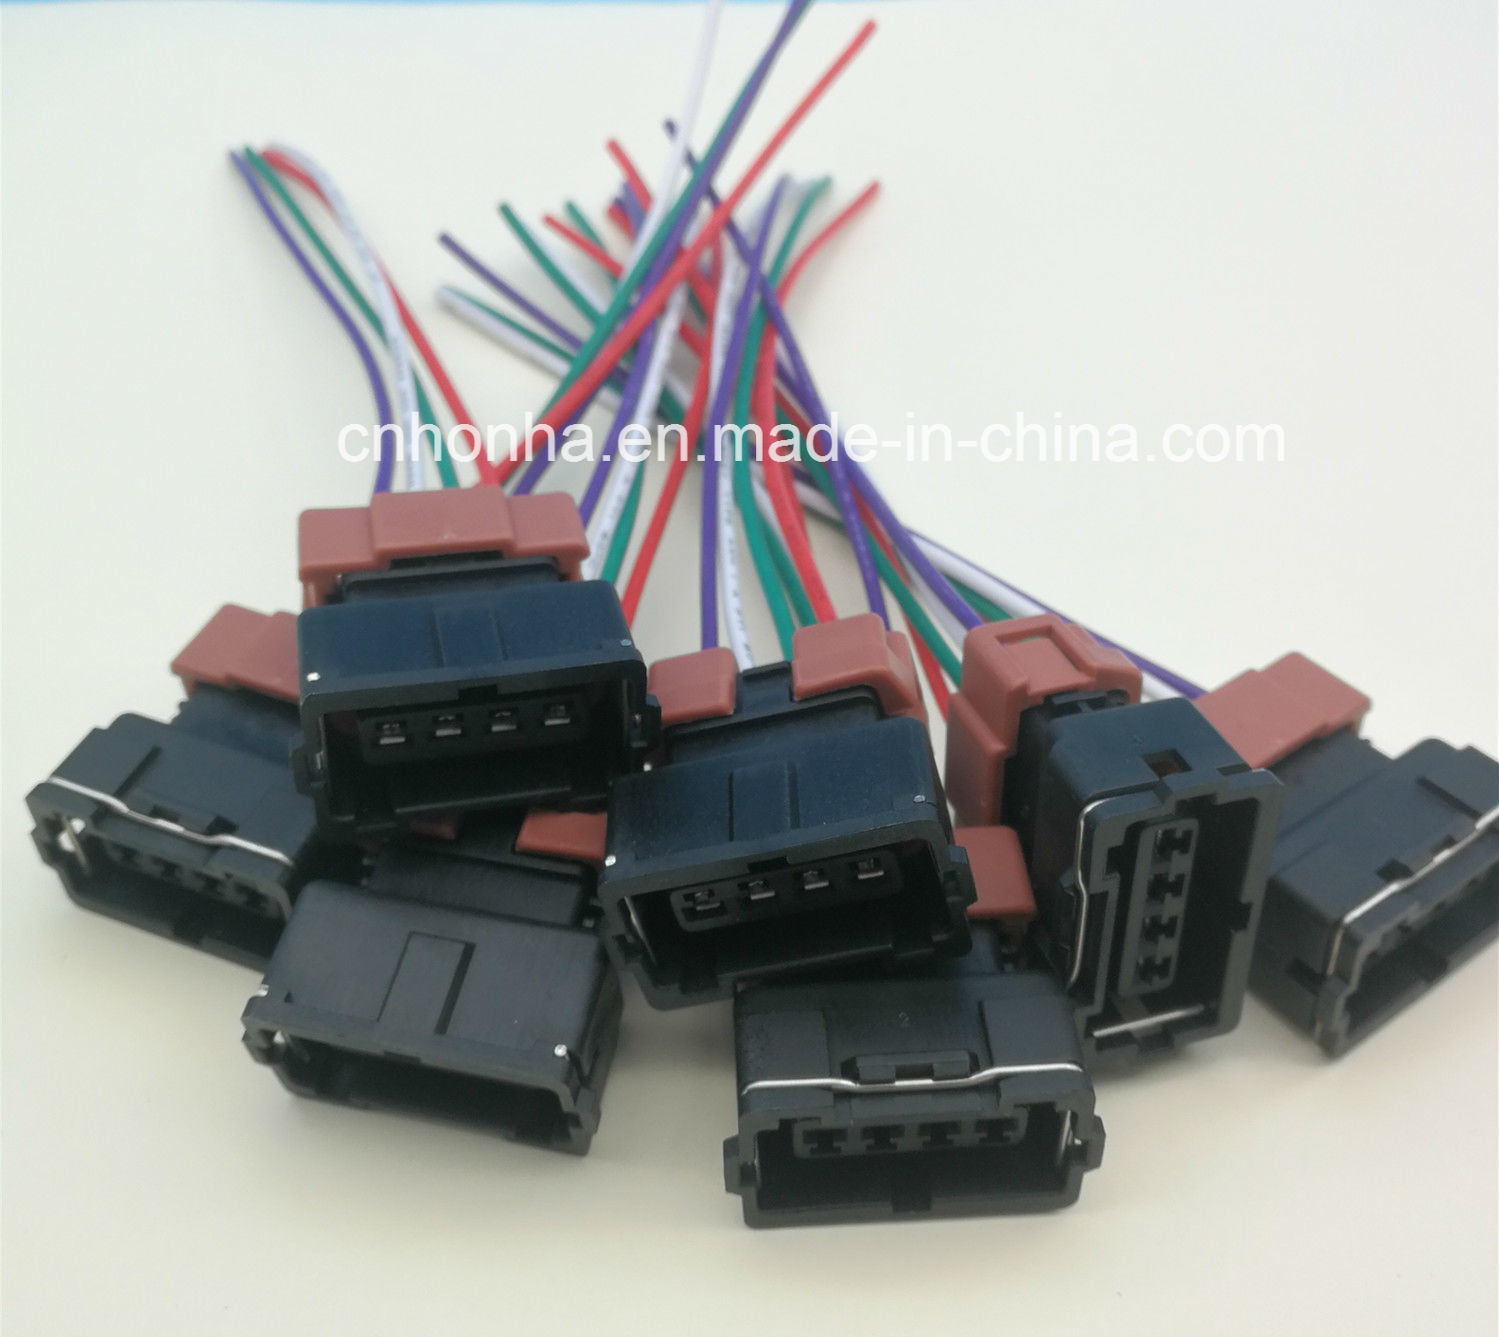 hight resolution of china 4 pin female toyota pbt connector wire harness for denso china cable wire wire harness